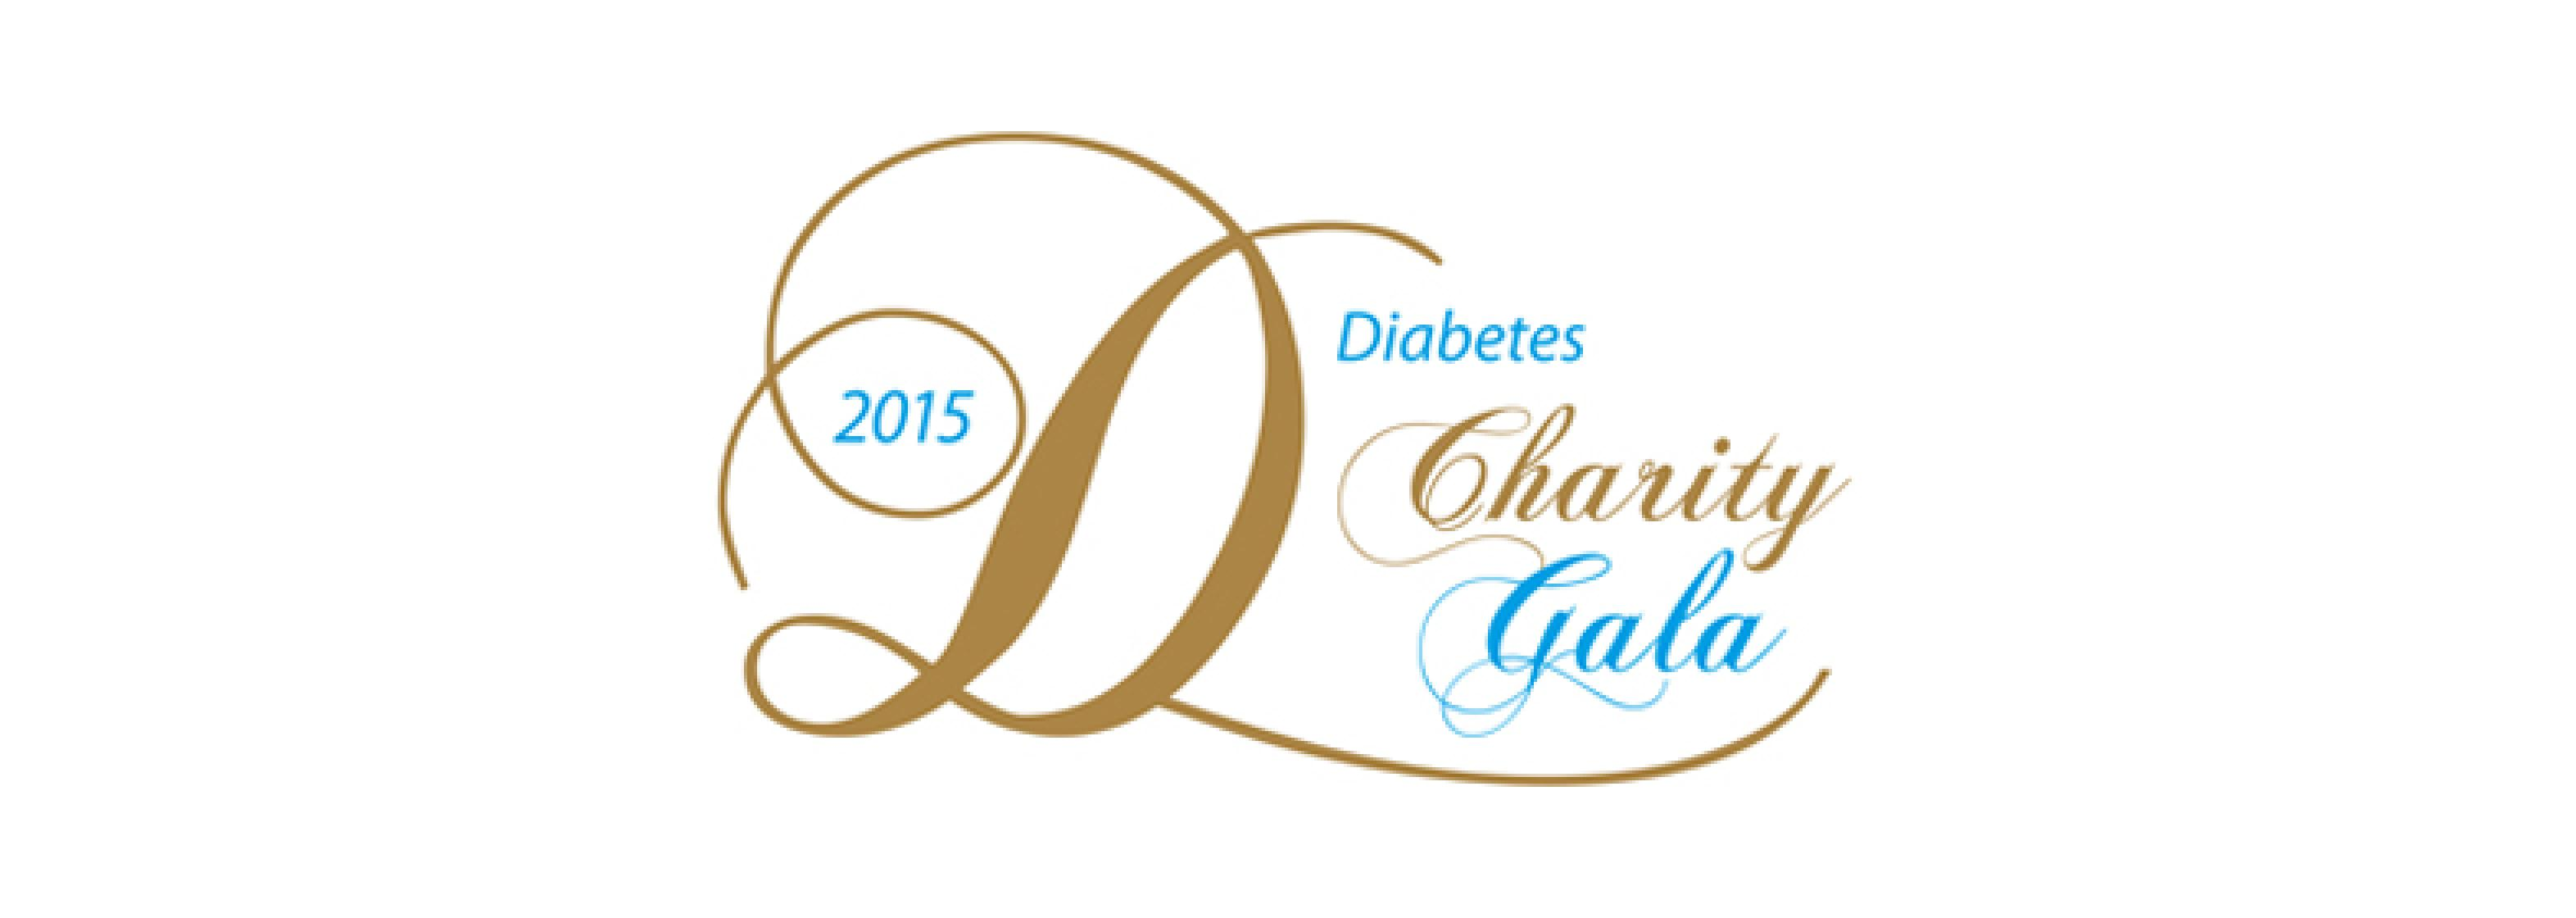 Logo Diabetes Charity Gala 2015